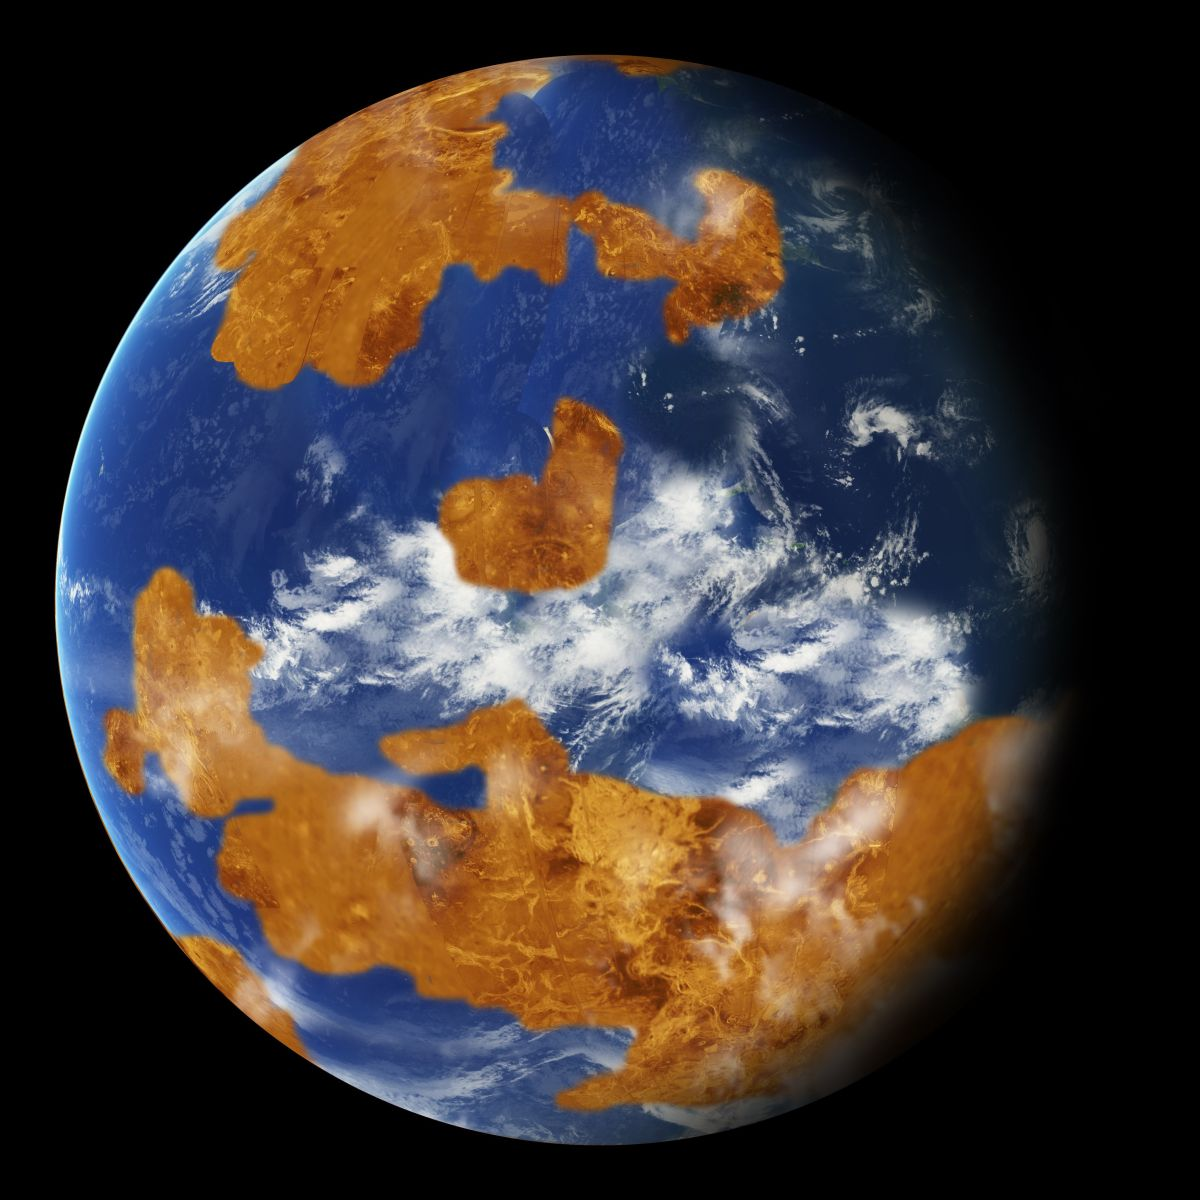 Venus May Not Have Been As Earthlike As Scientists Thought